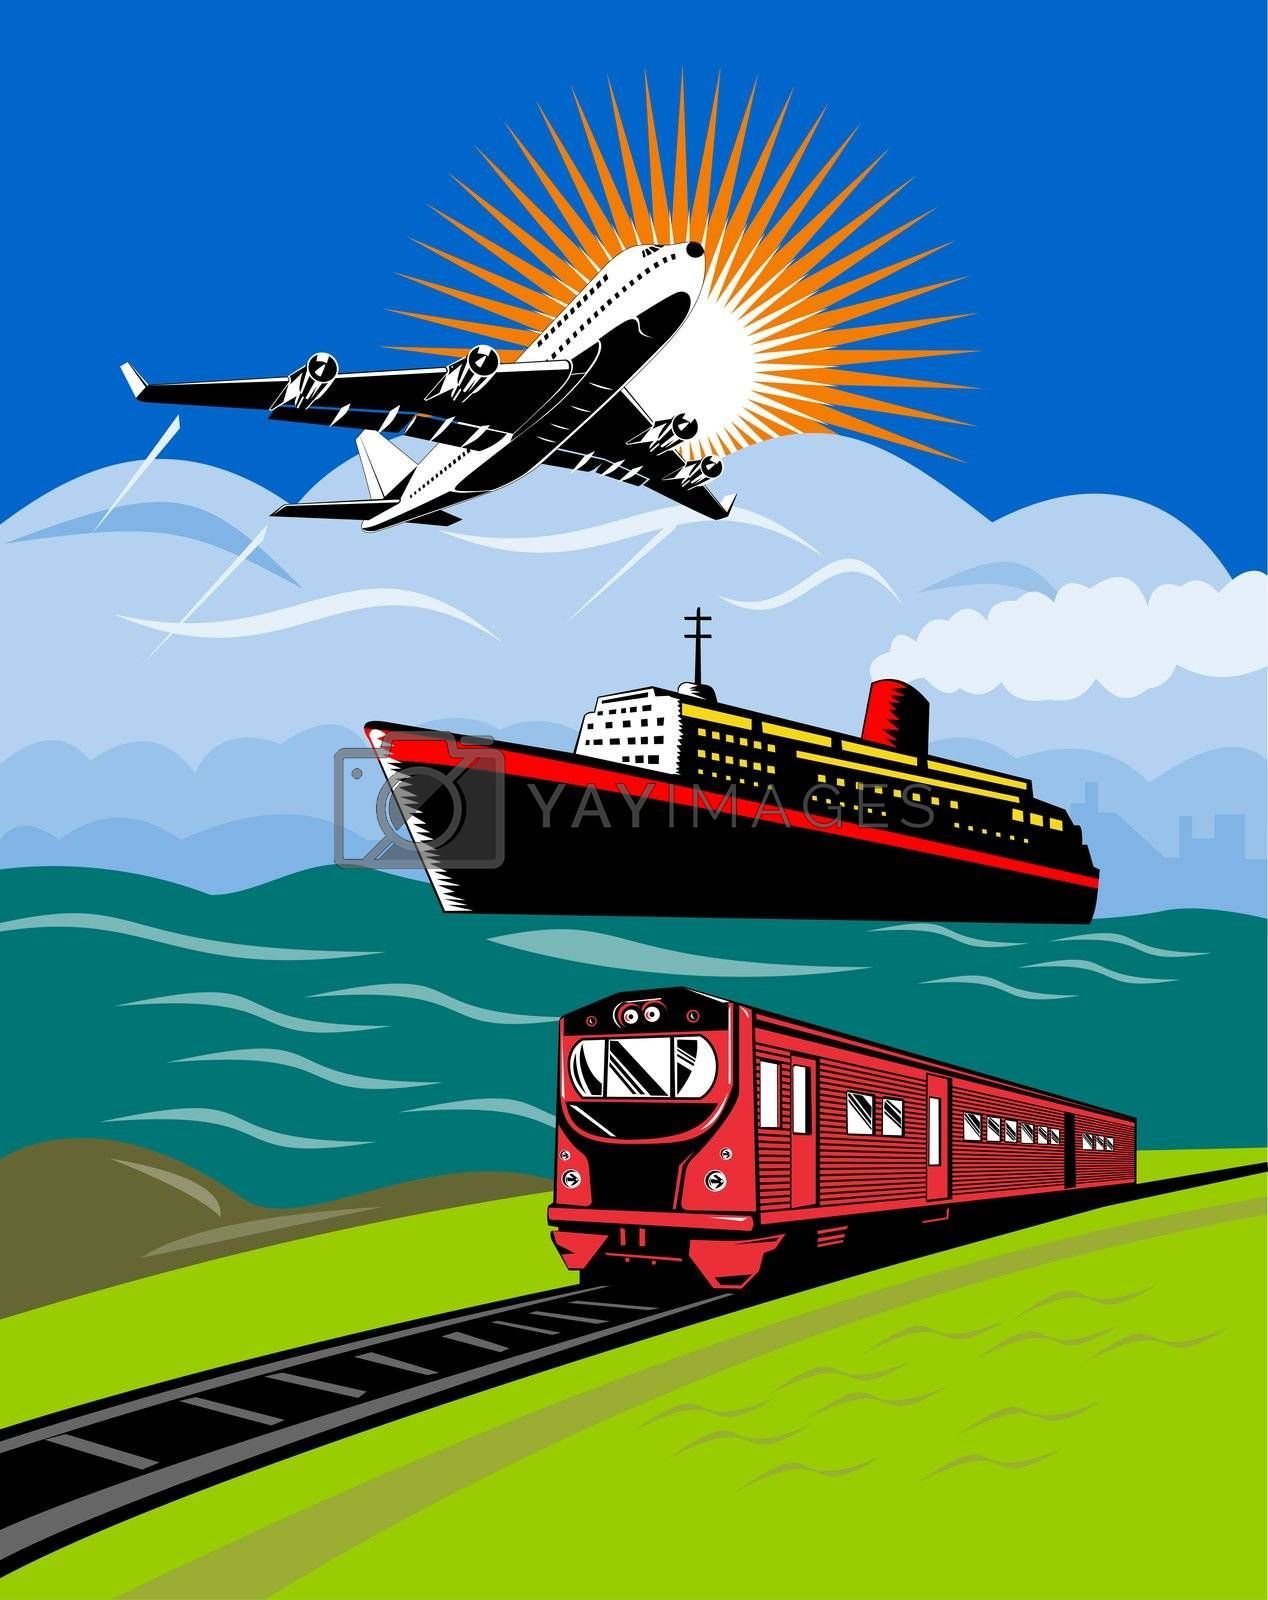 illustration of a commercial jet plane airliner on flight flying taking off with ship and train